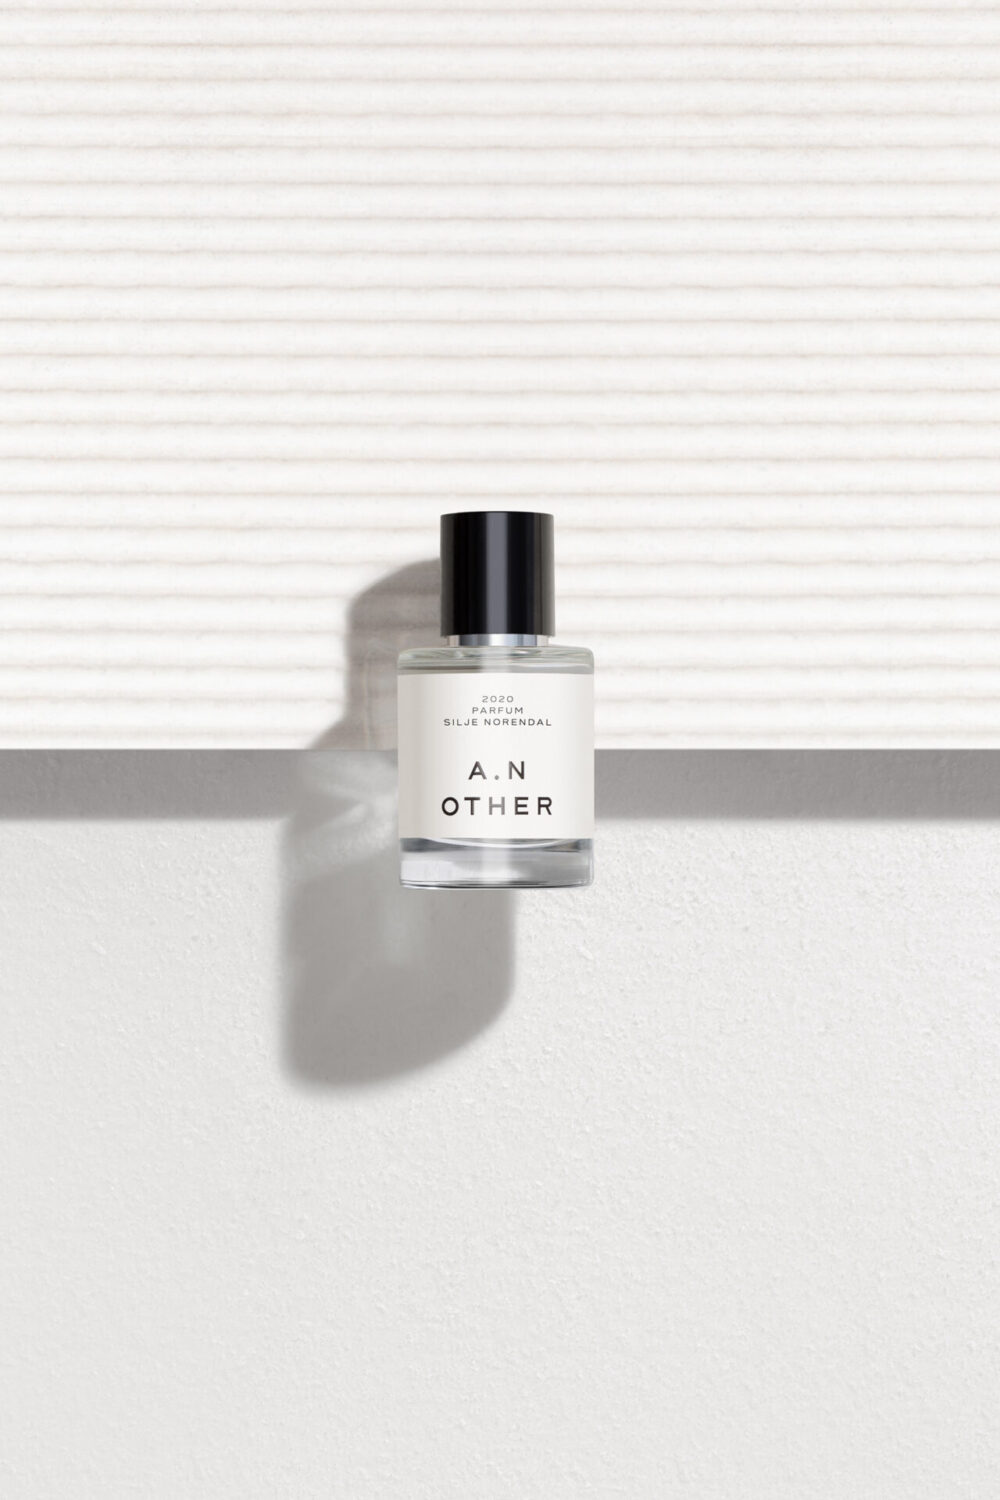 a.n other SN-50ml